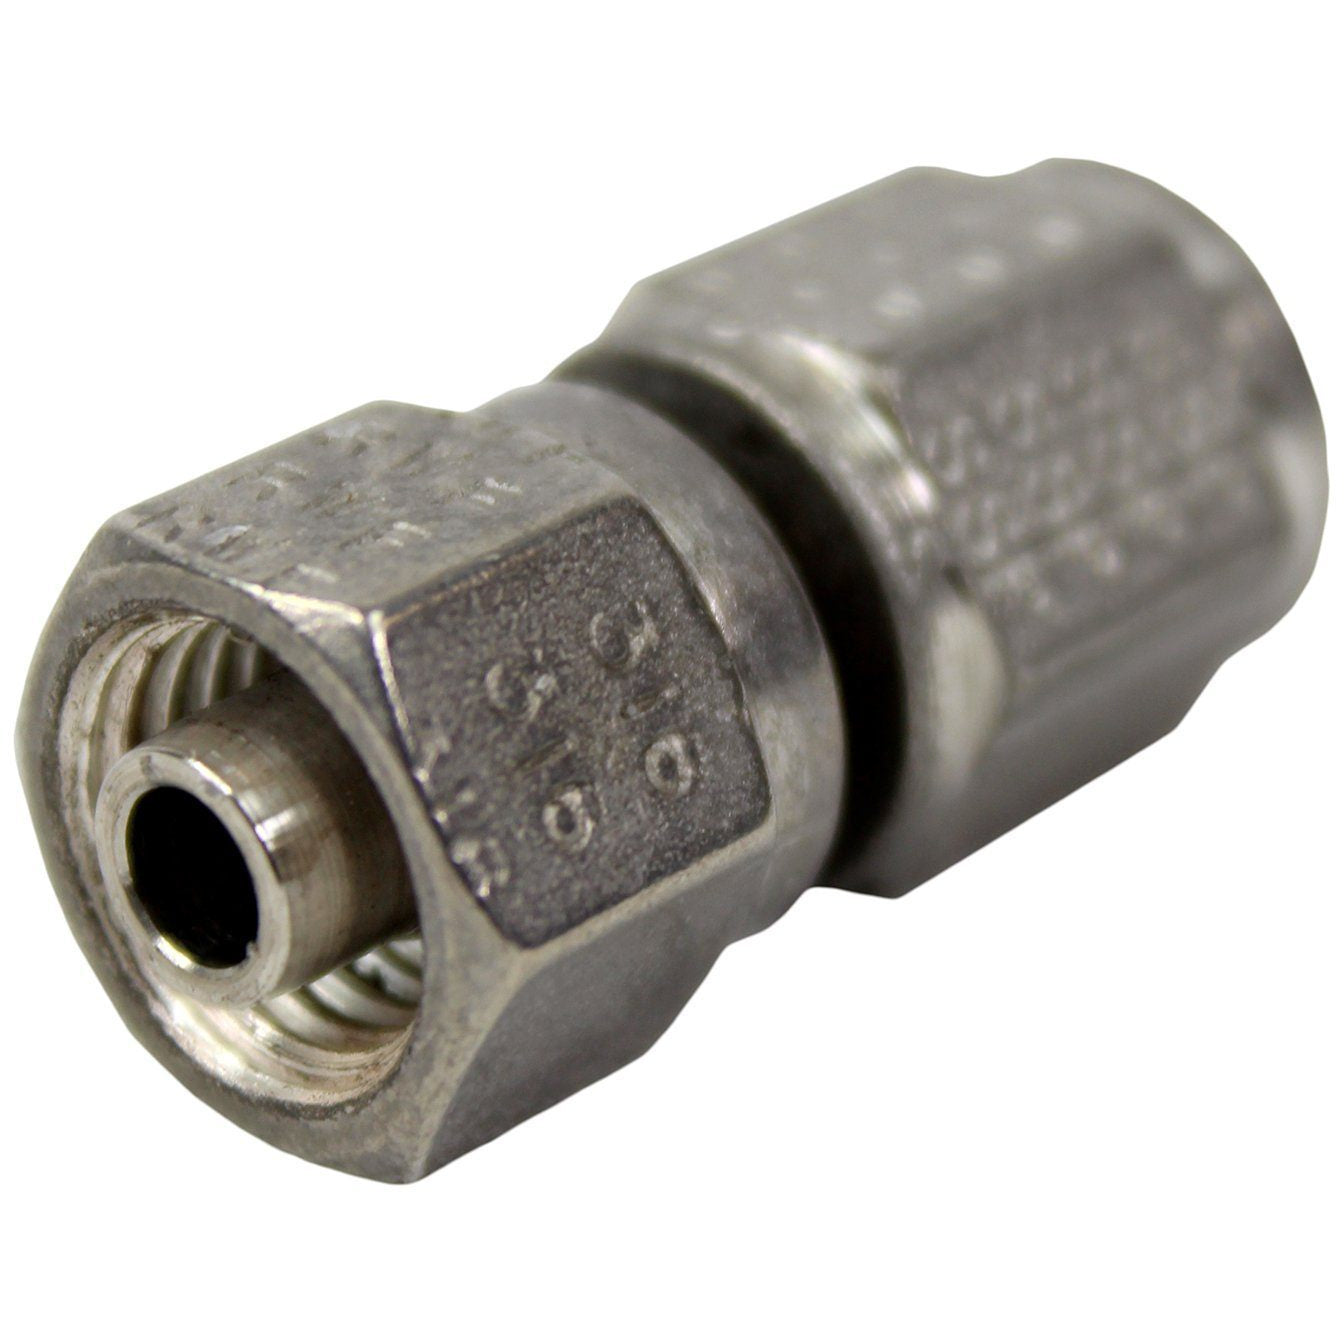 SSP - Female 37° AN Adapter Shop All Categories SSP Corporation